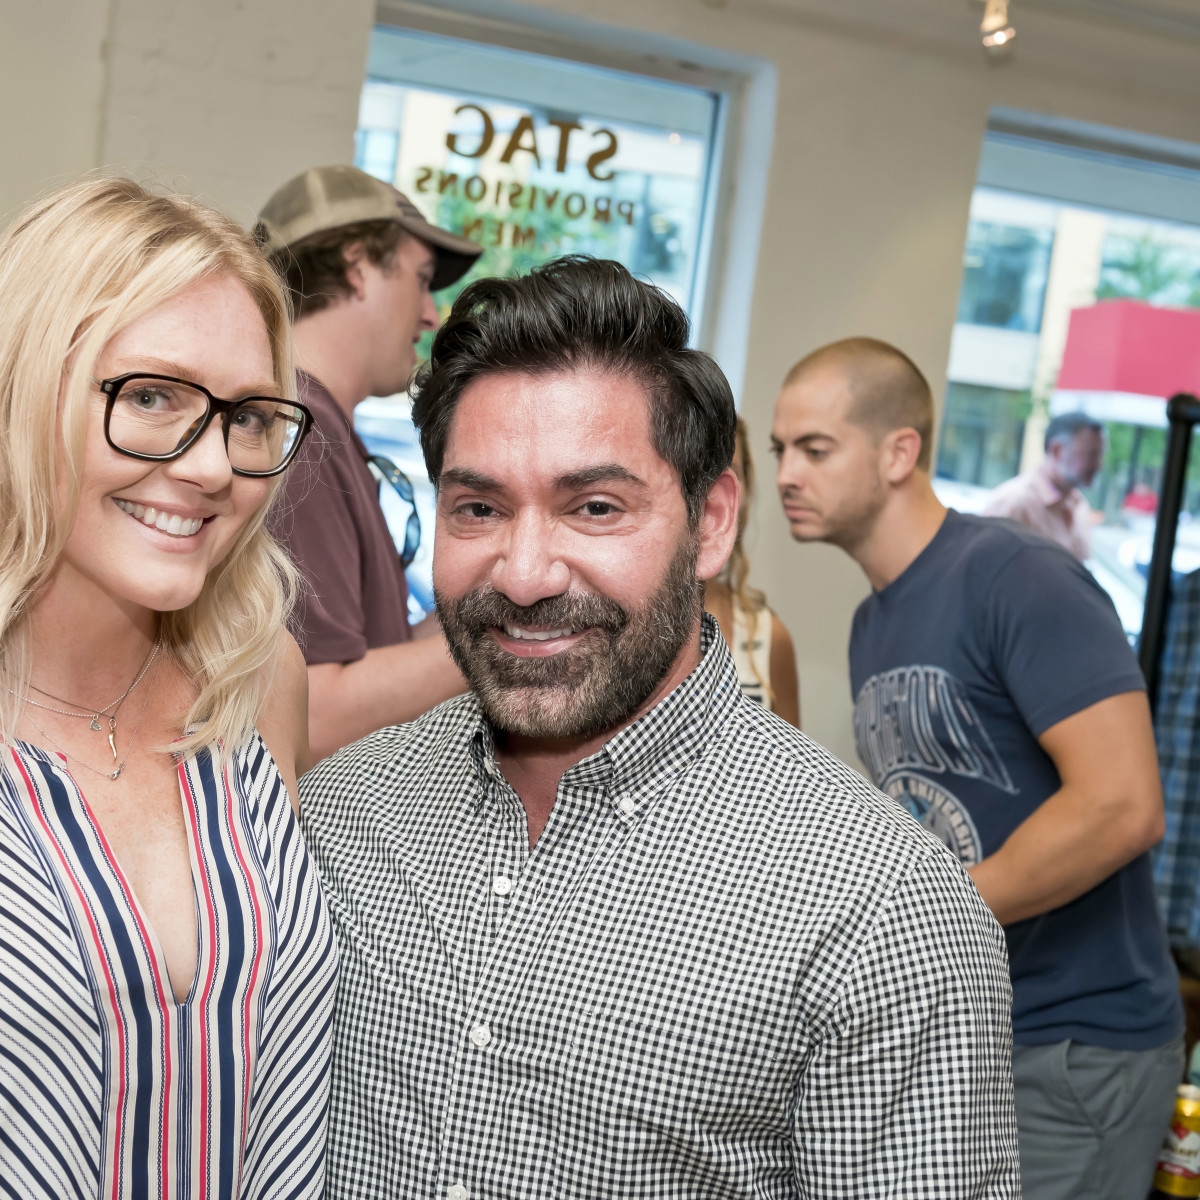 Houston, Stag Provisions opening party, June 2015, Caroline Starry LeBlanc, David Michael